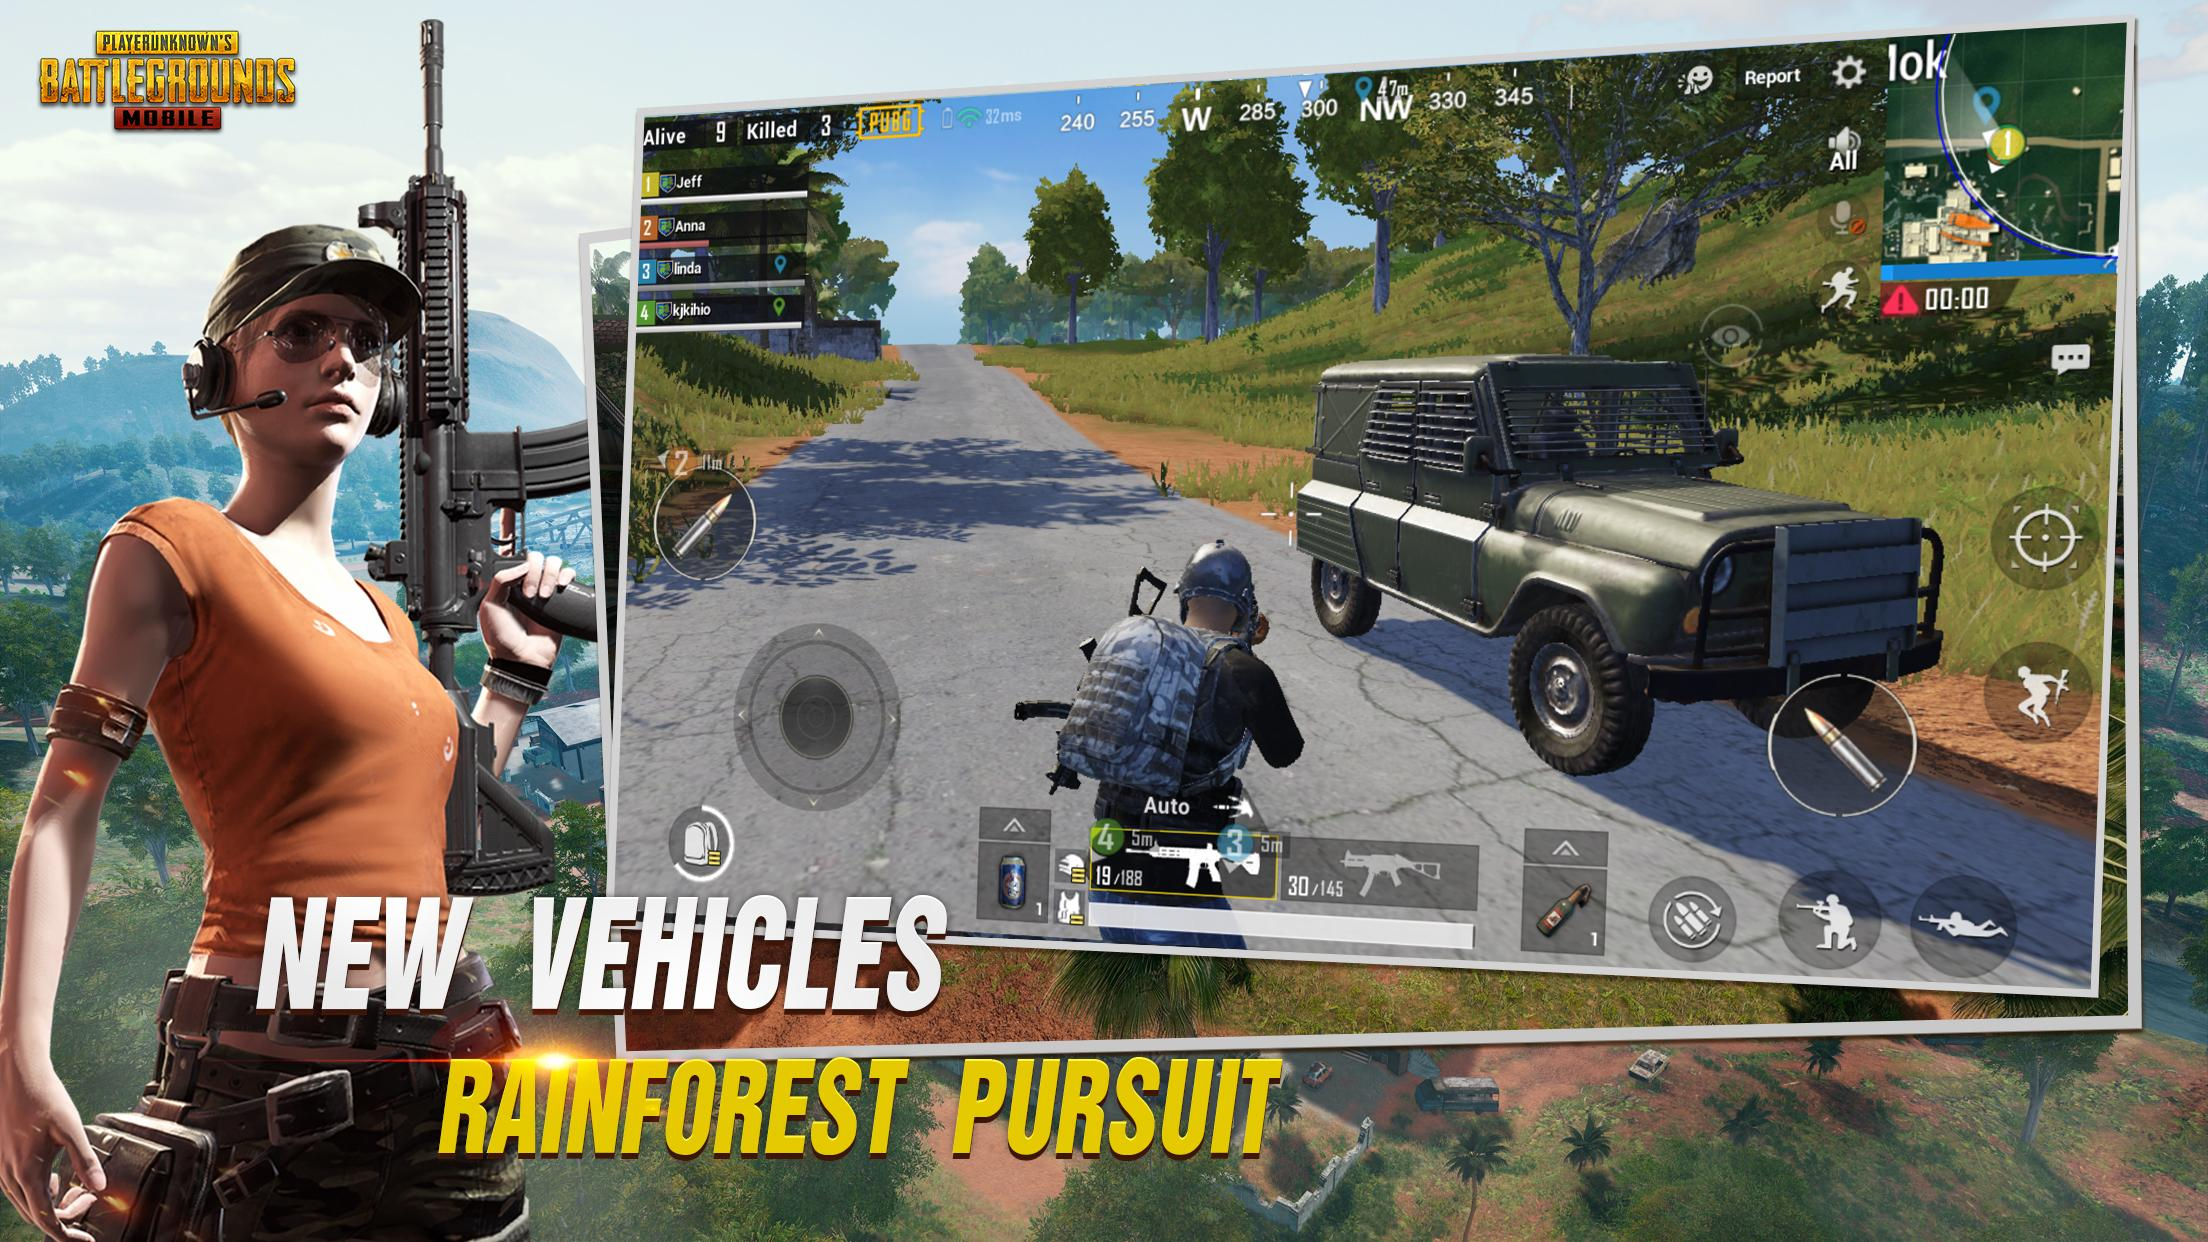 PUBG Mobile v0 8 0 adds Sanhok map, new vehicles, and more